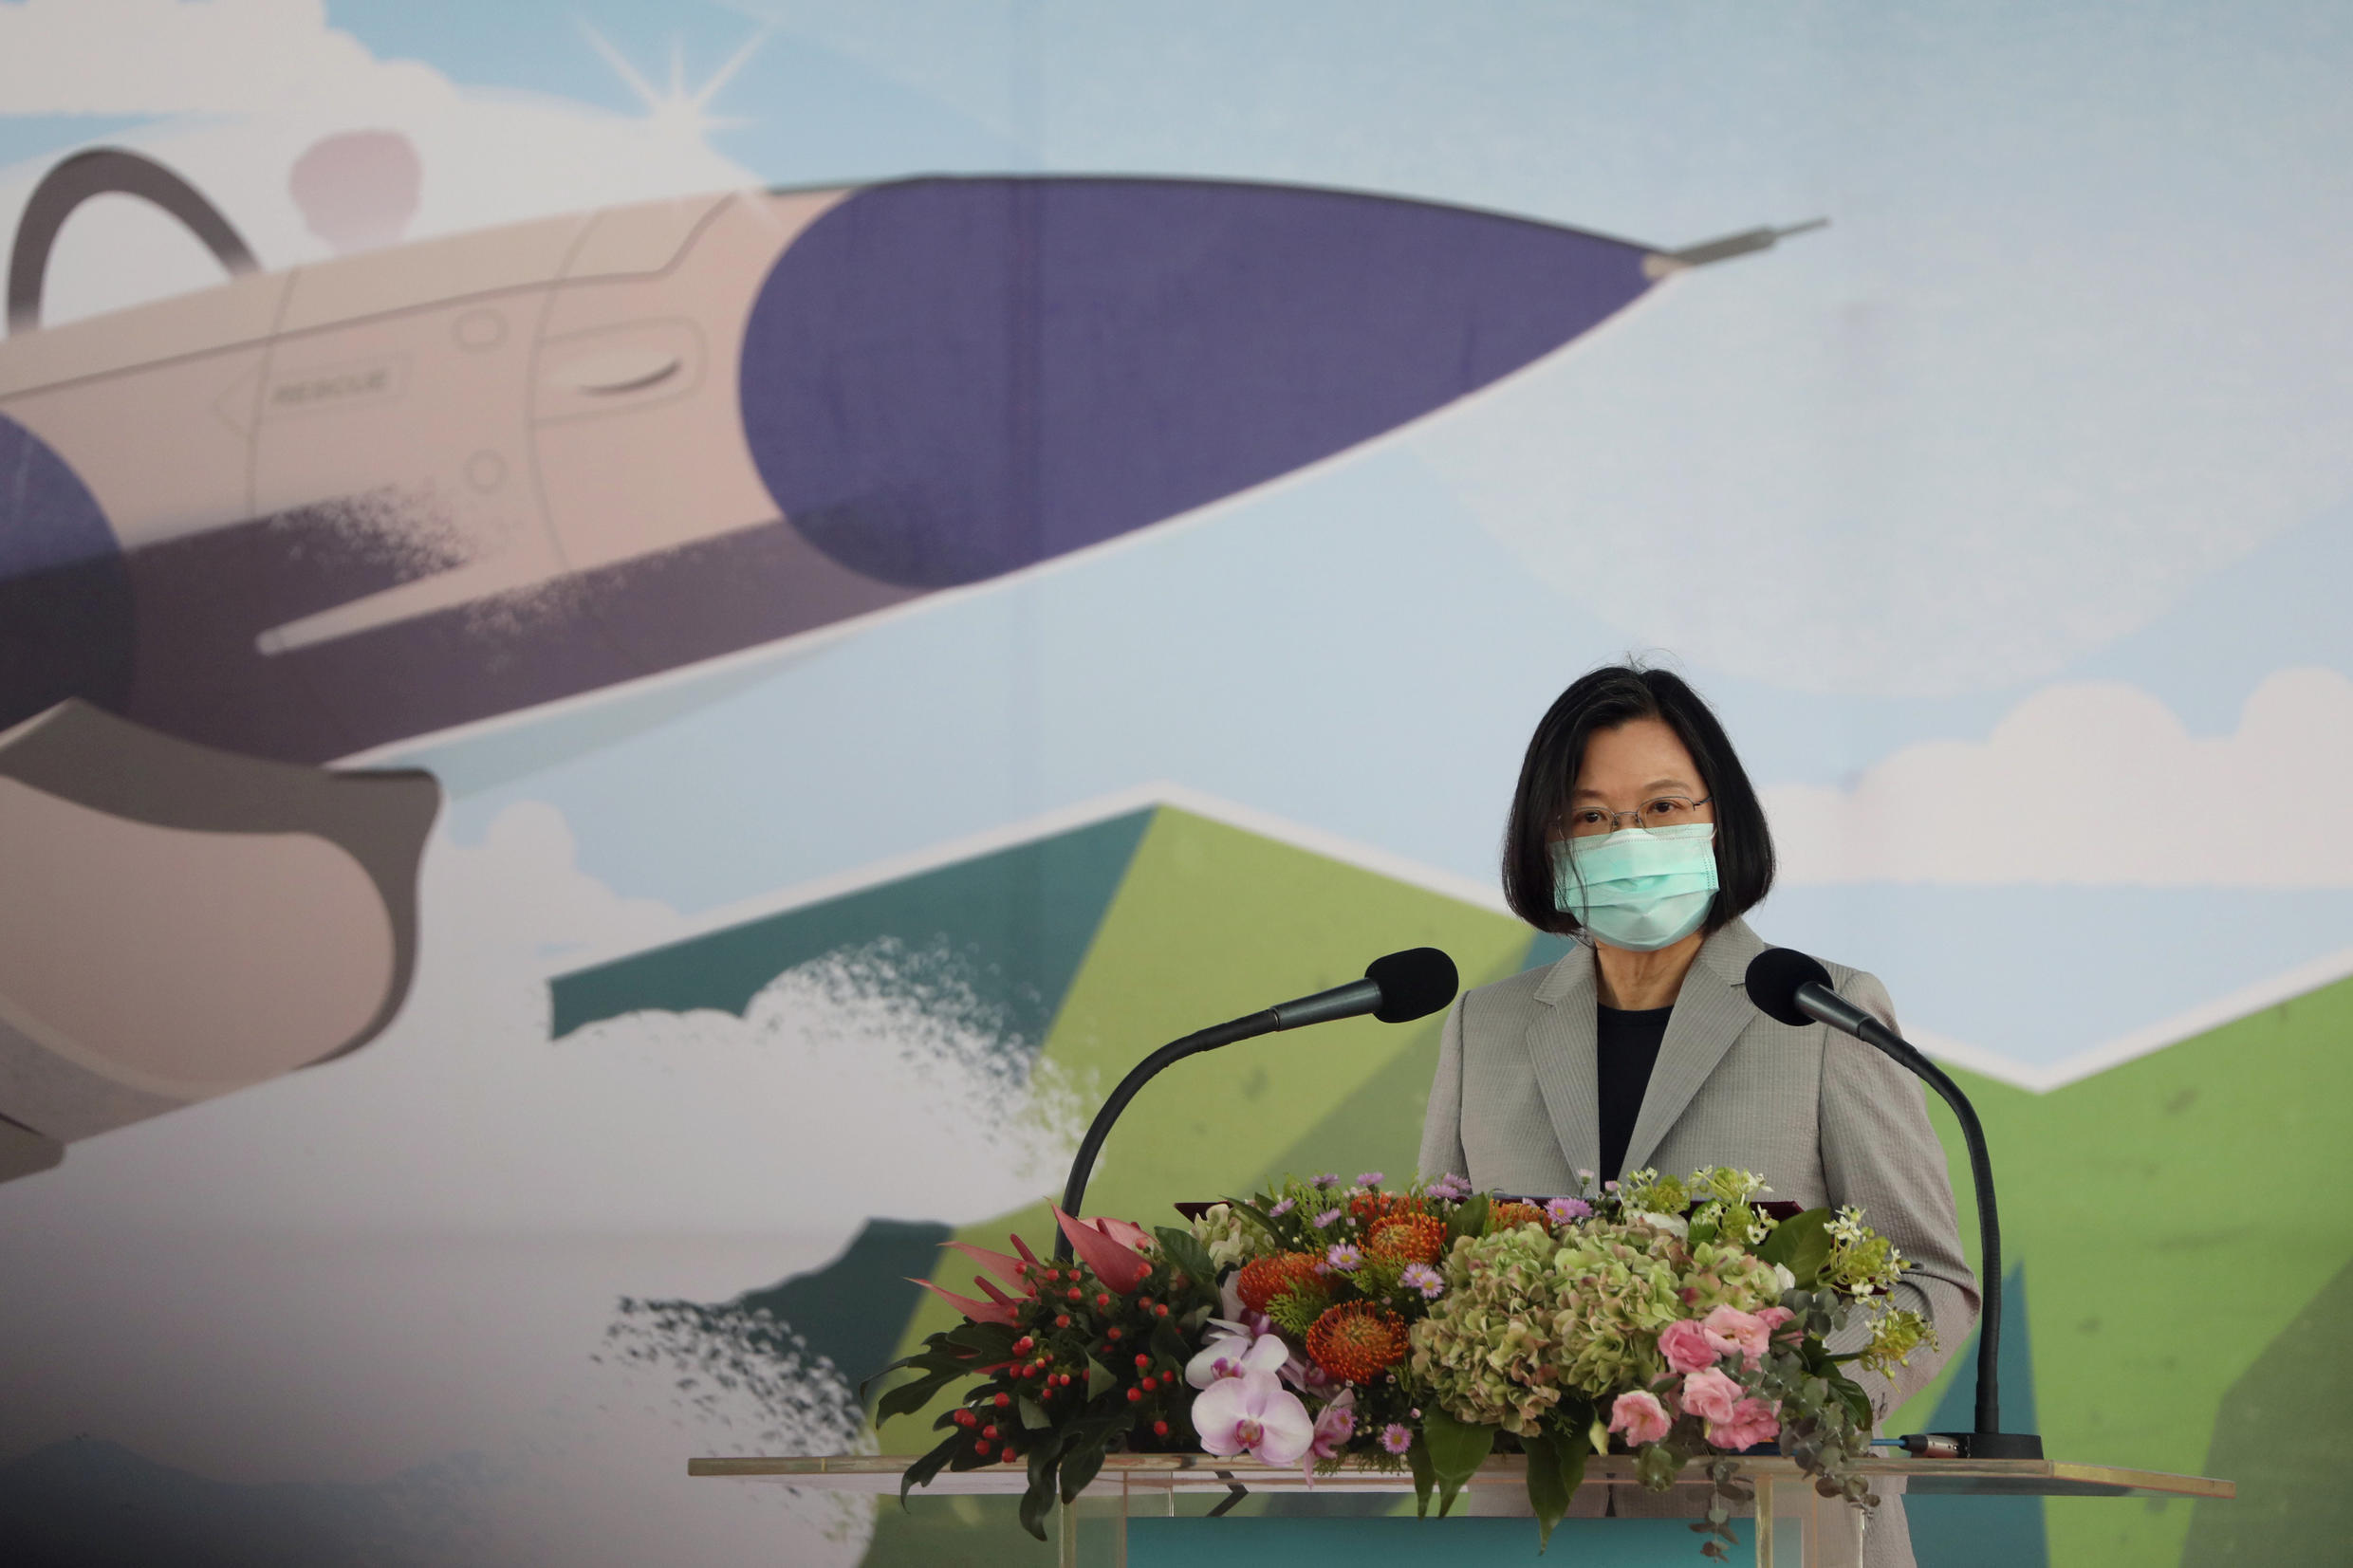 Taiwan President Tsai Ing-wen attends an inauguration ceremony of a maintenance centre for F-16 fighter jets, in Taichung, Taiwan August 28, 2020